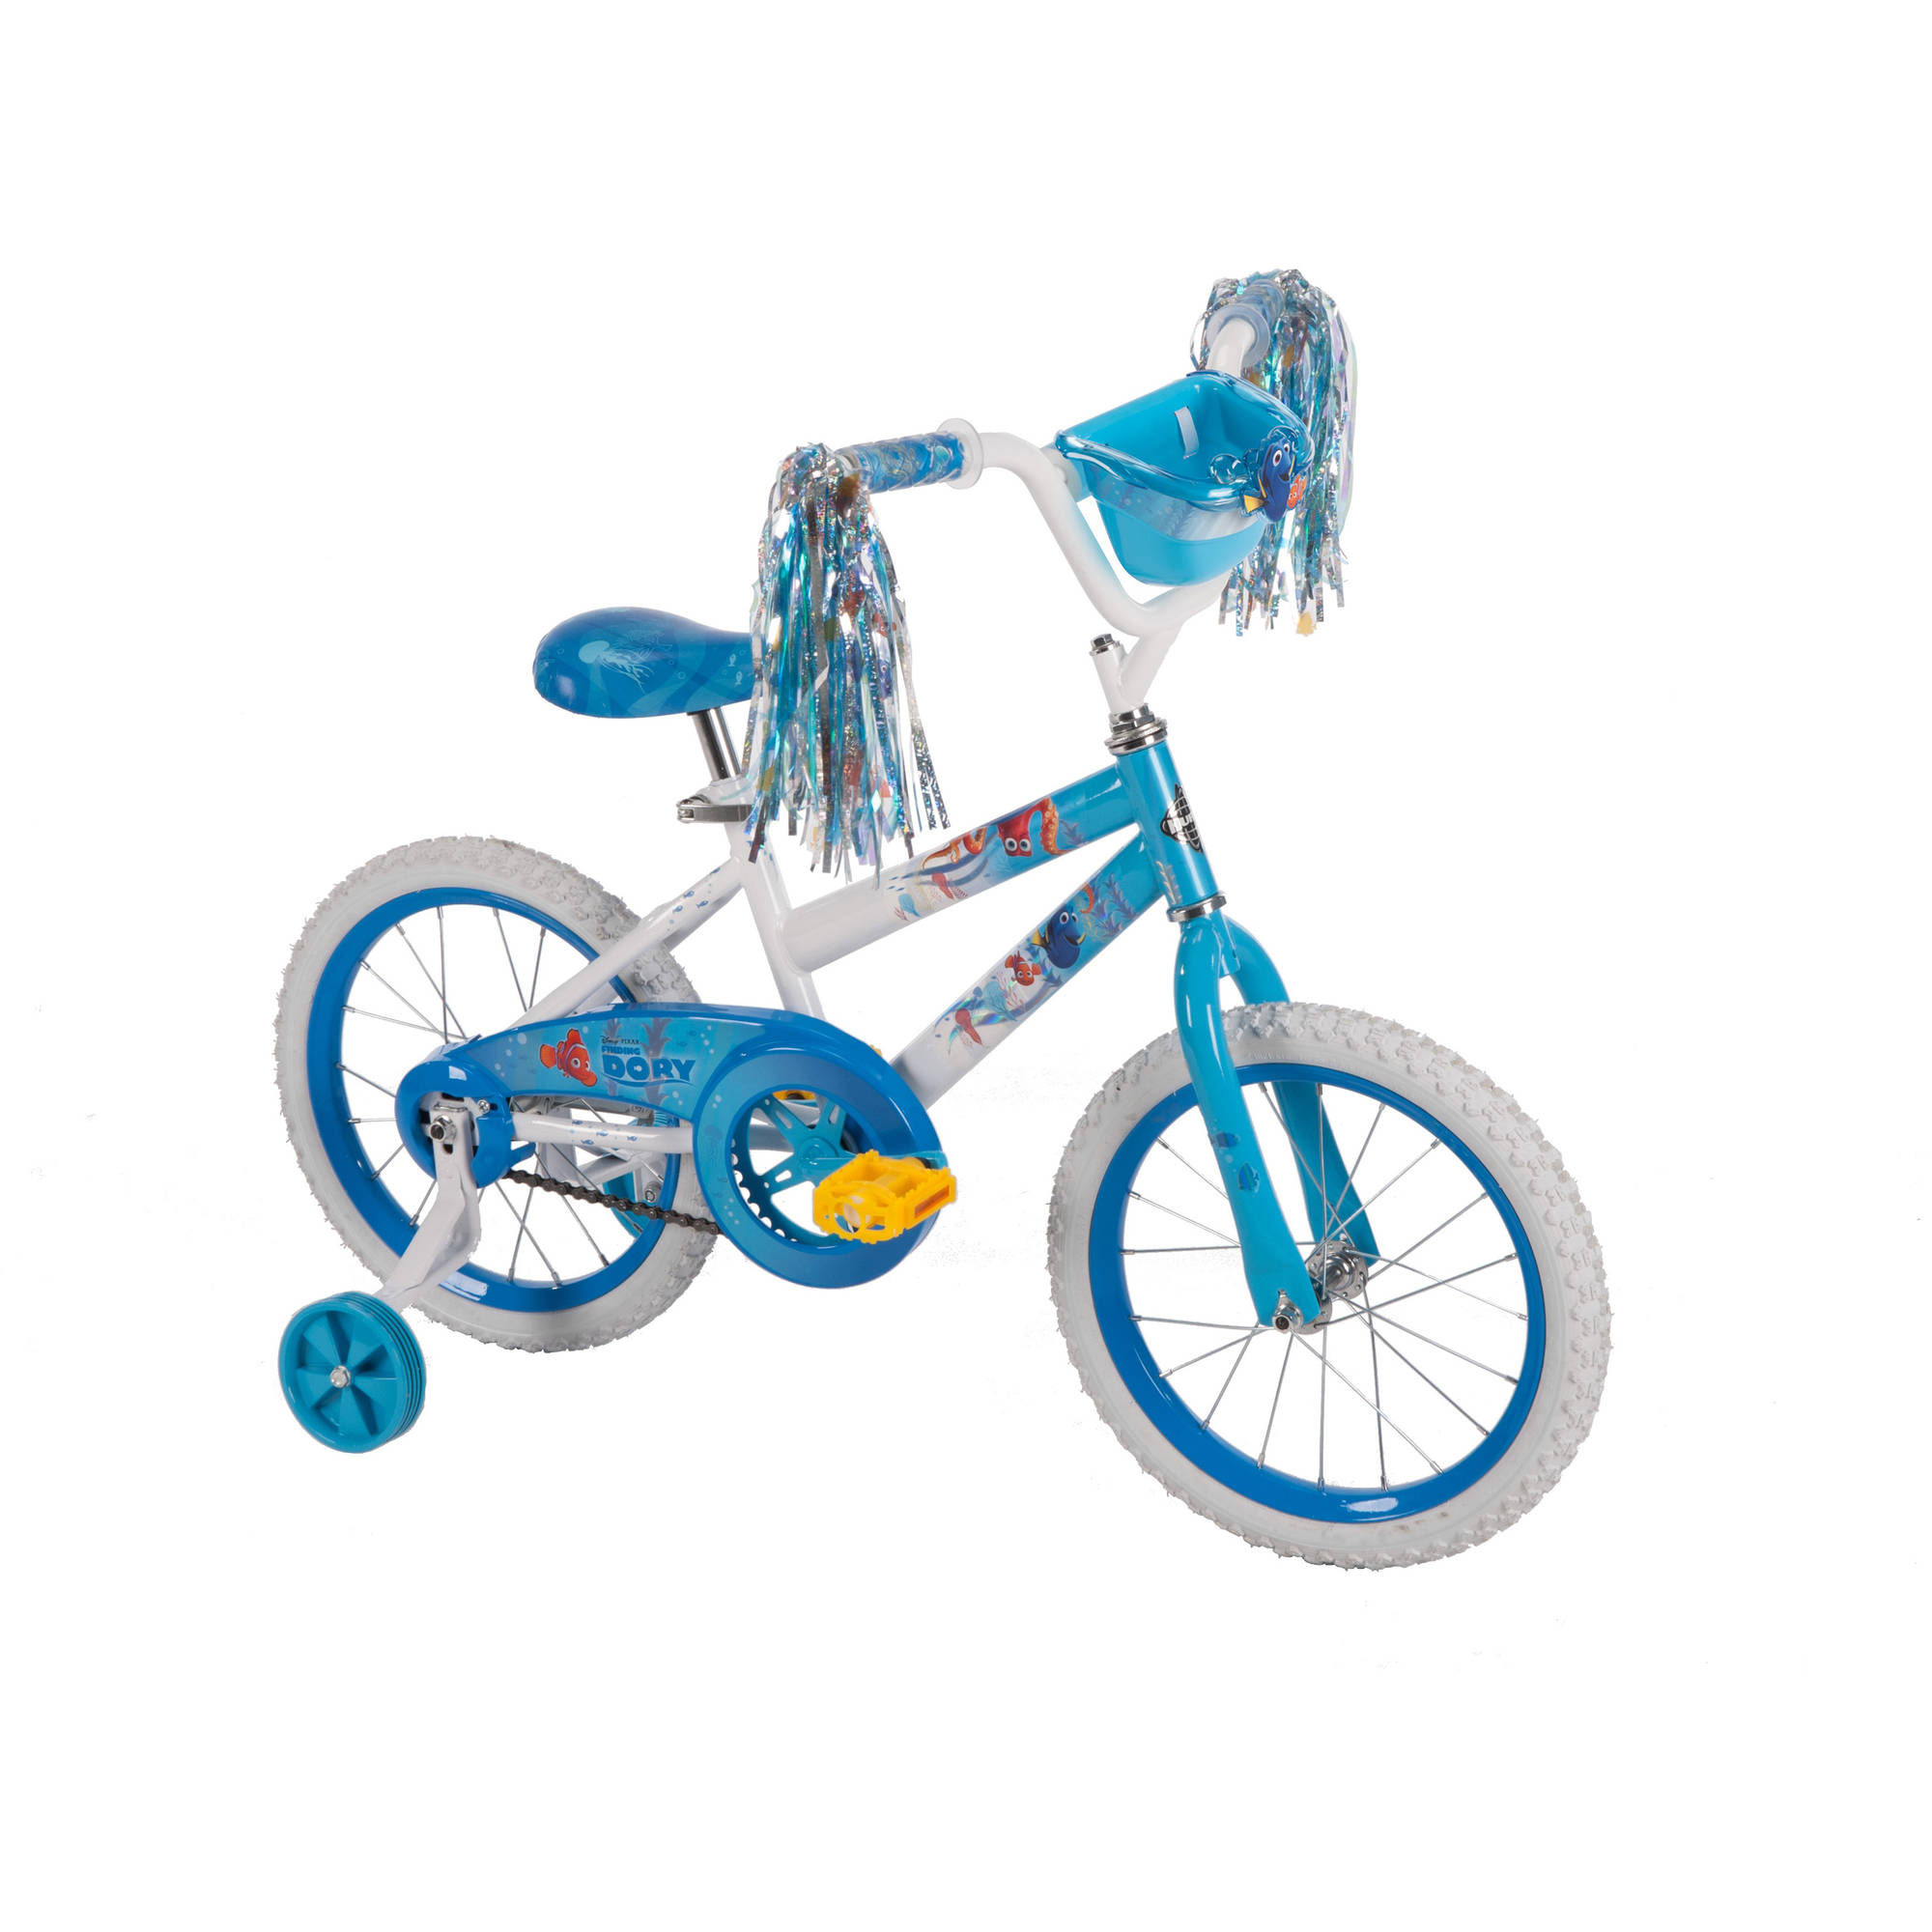 "Huffy Disney/Pixar Finding Dory 16"" Girls' Bike"